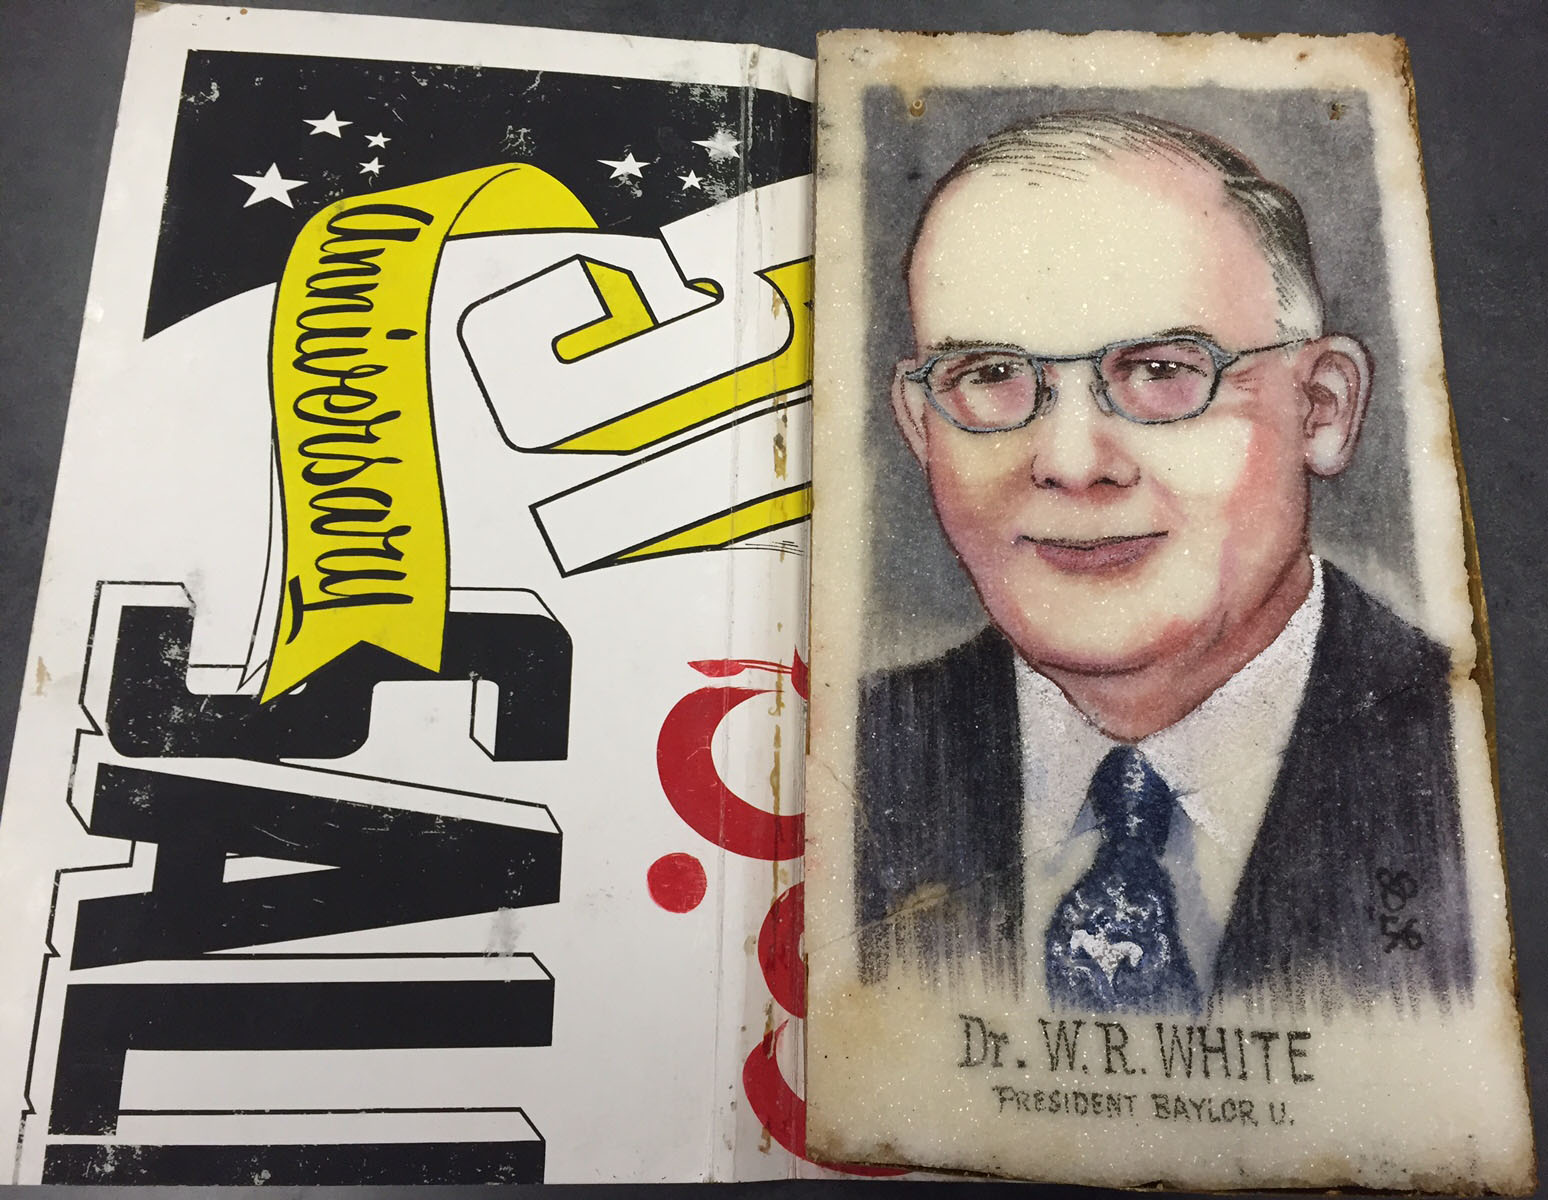 Sugar portrait of Baylor President W.R. White, 1956